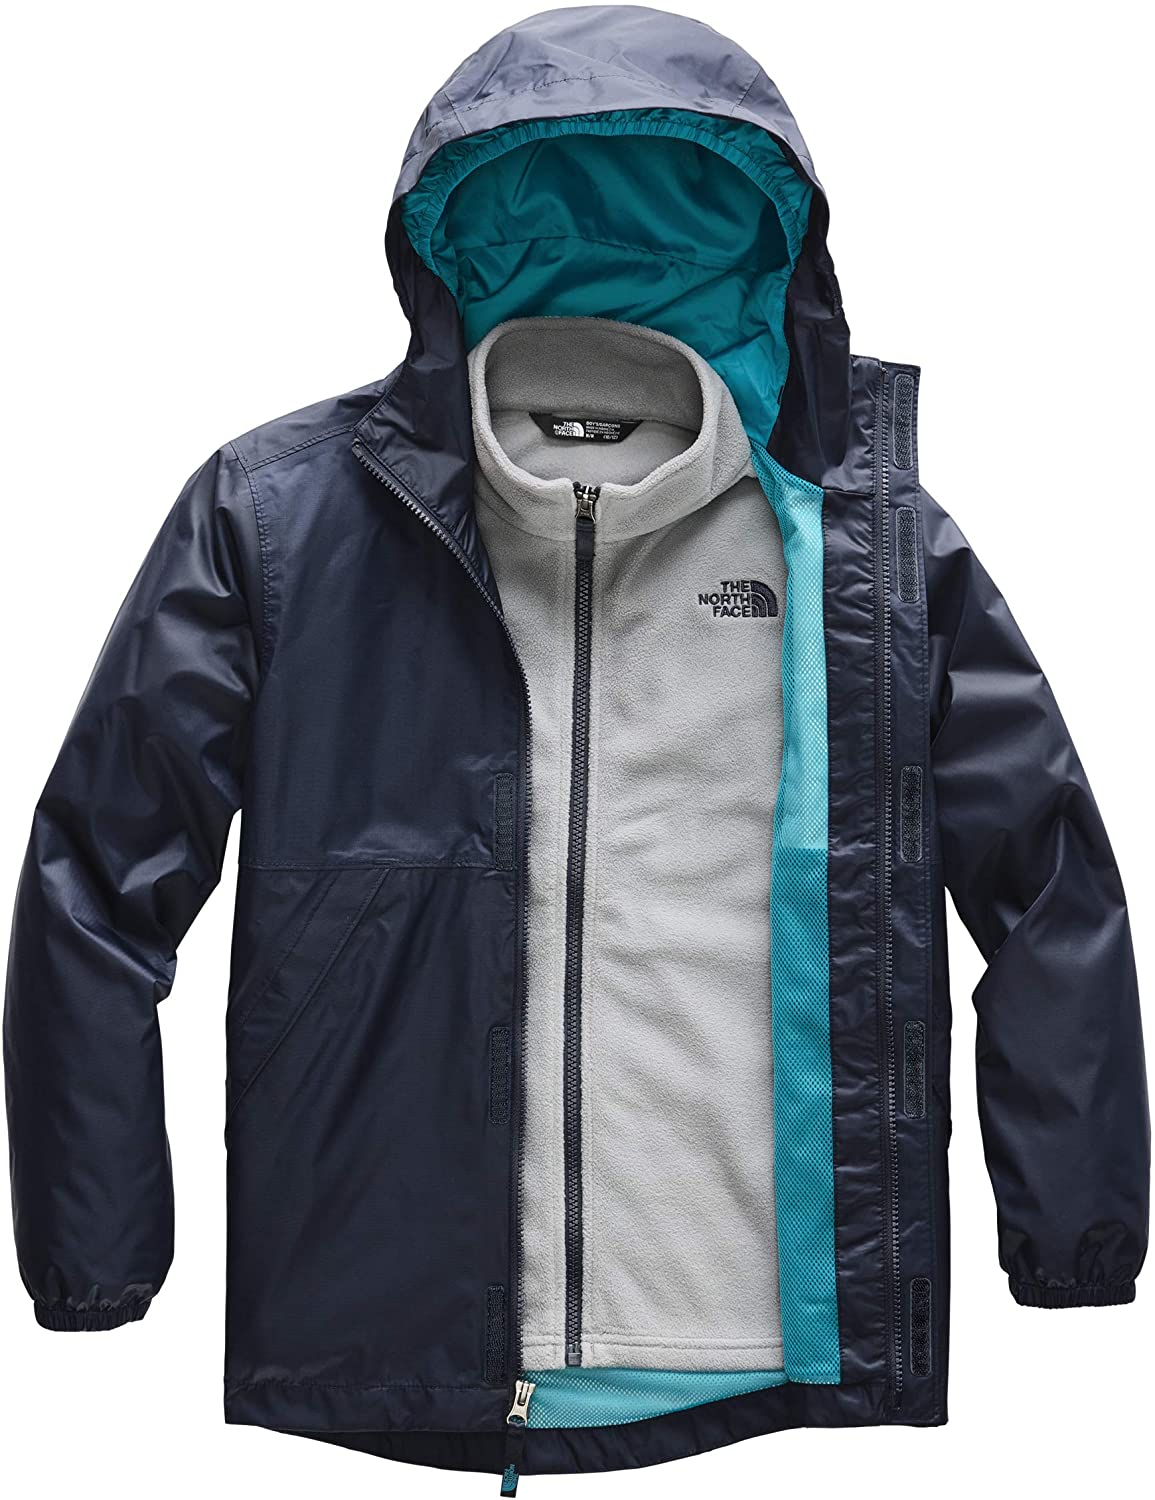 The North Face Kids Boy's Stormy Rain Triclimate (Little Kids/Big Kids)